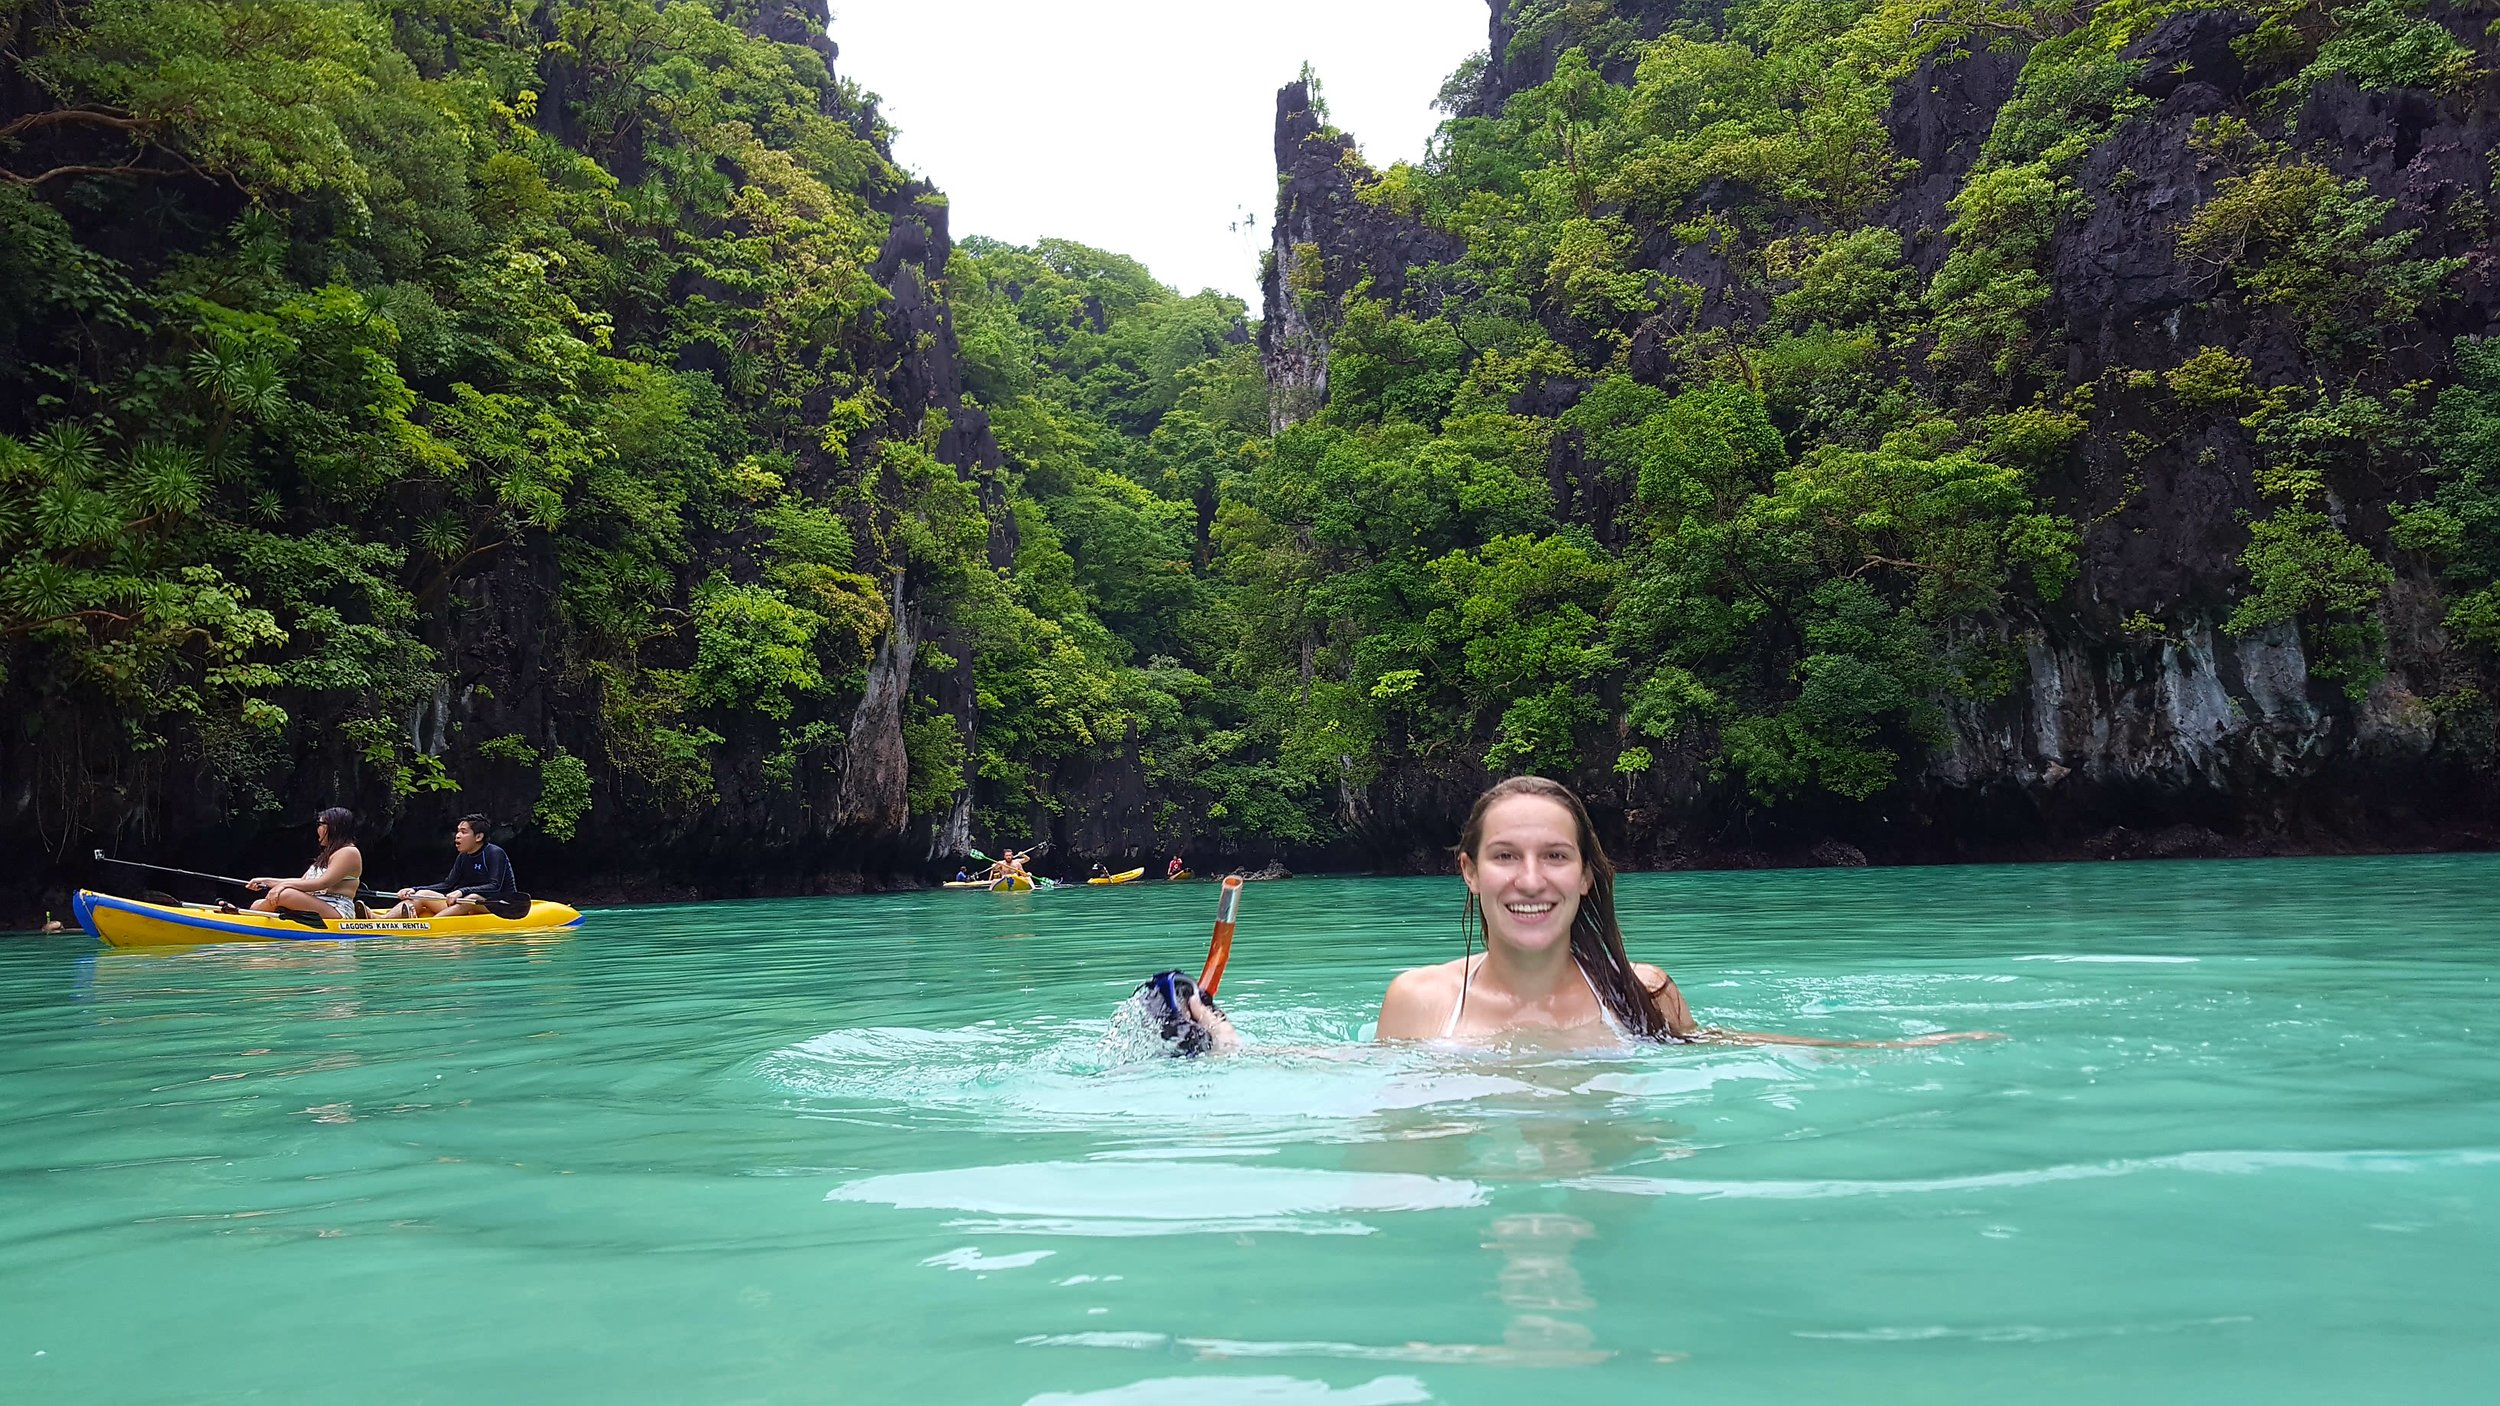 After my sophomore year of college, I ended my internship early and made time for a 3 week trip to the Philippines